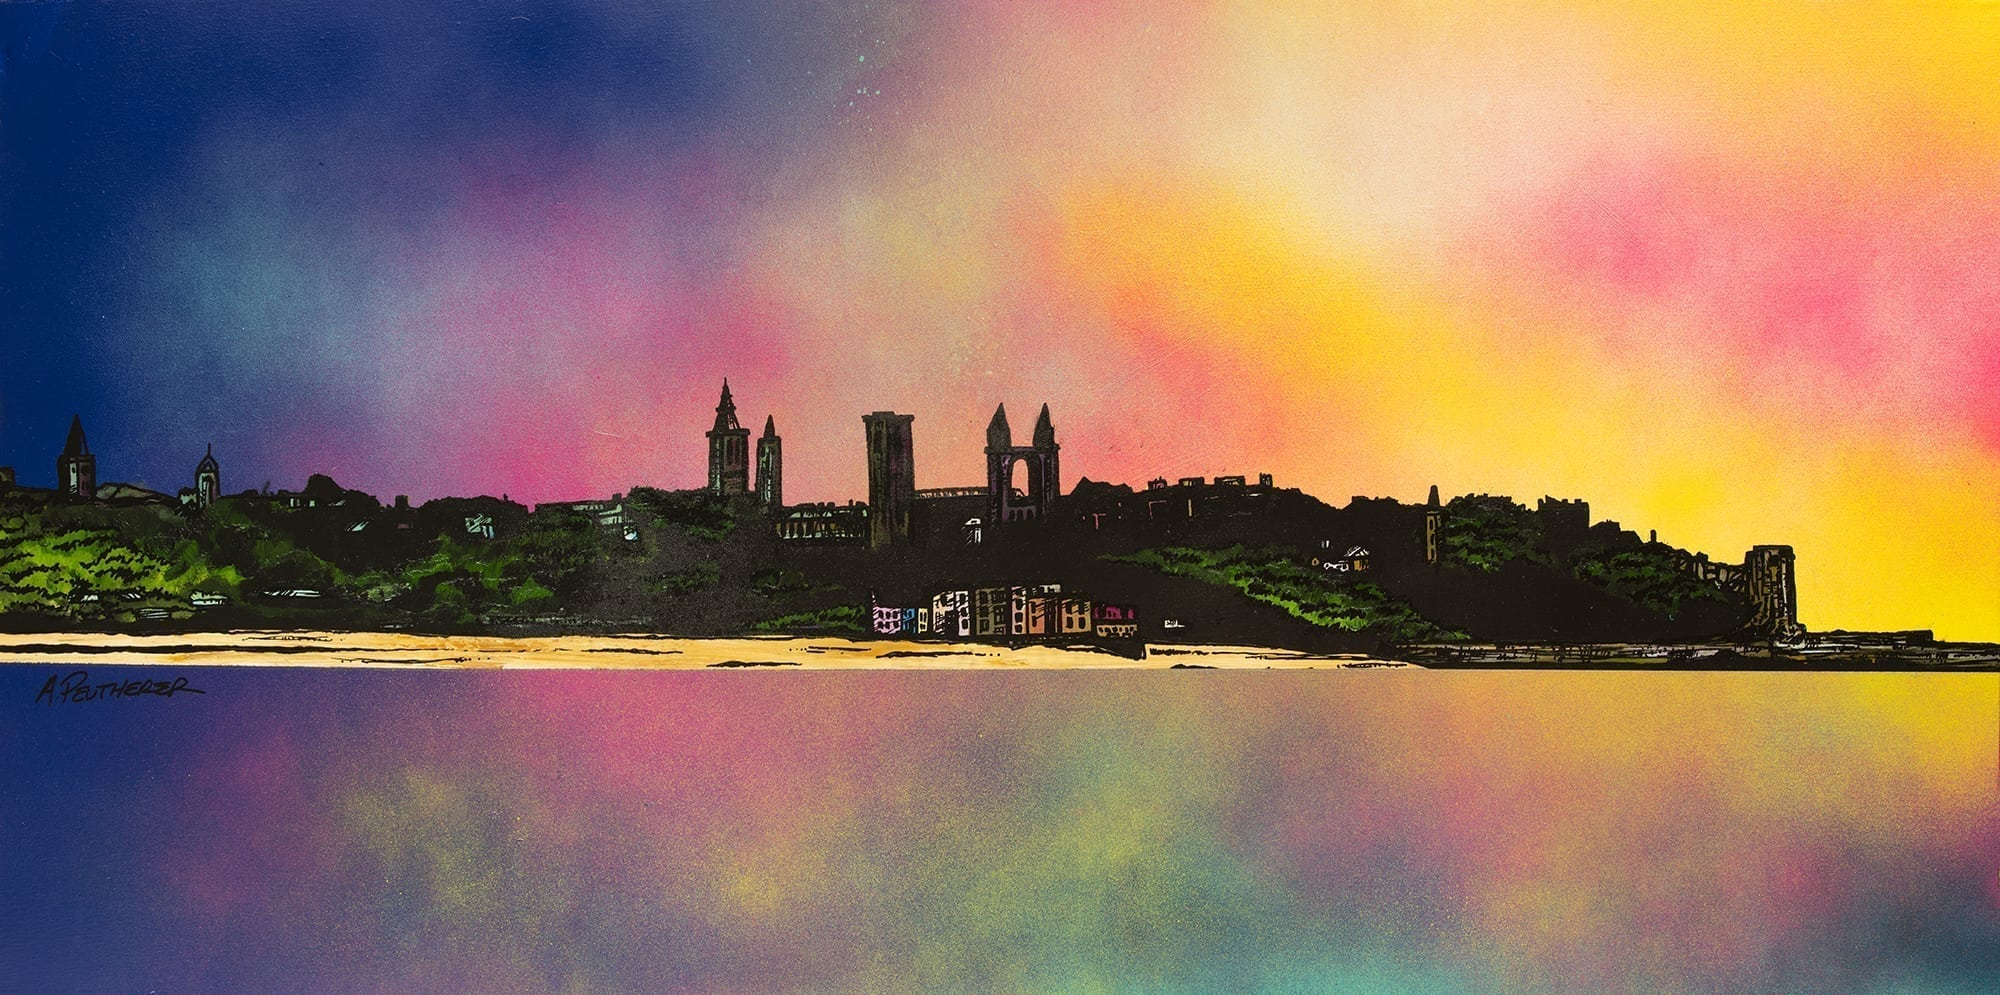 Painting & print of St Andrews, Fife, Scotland